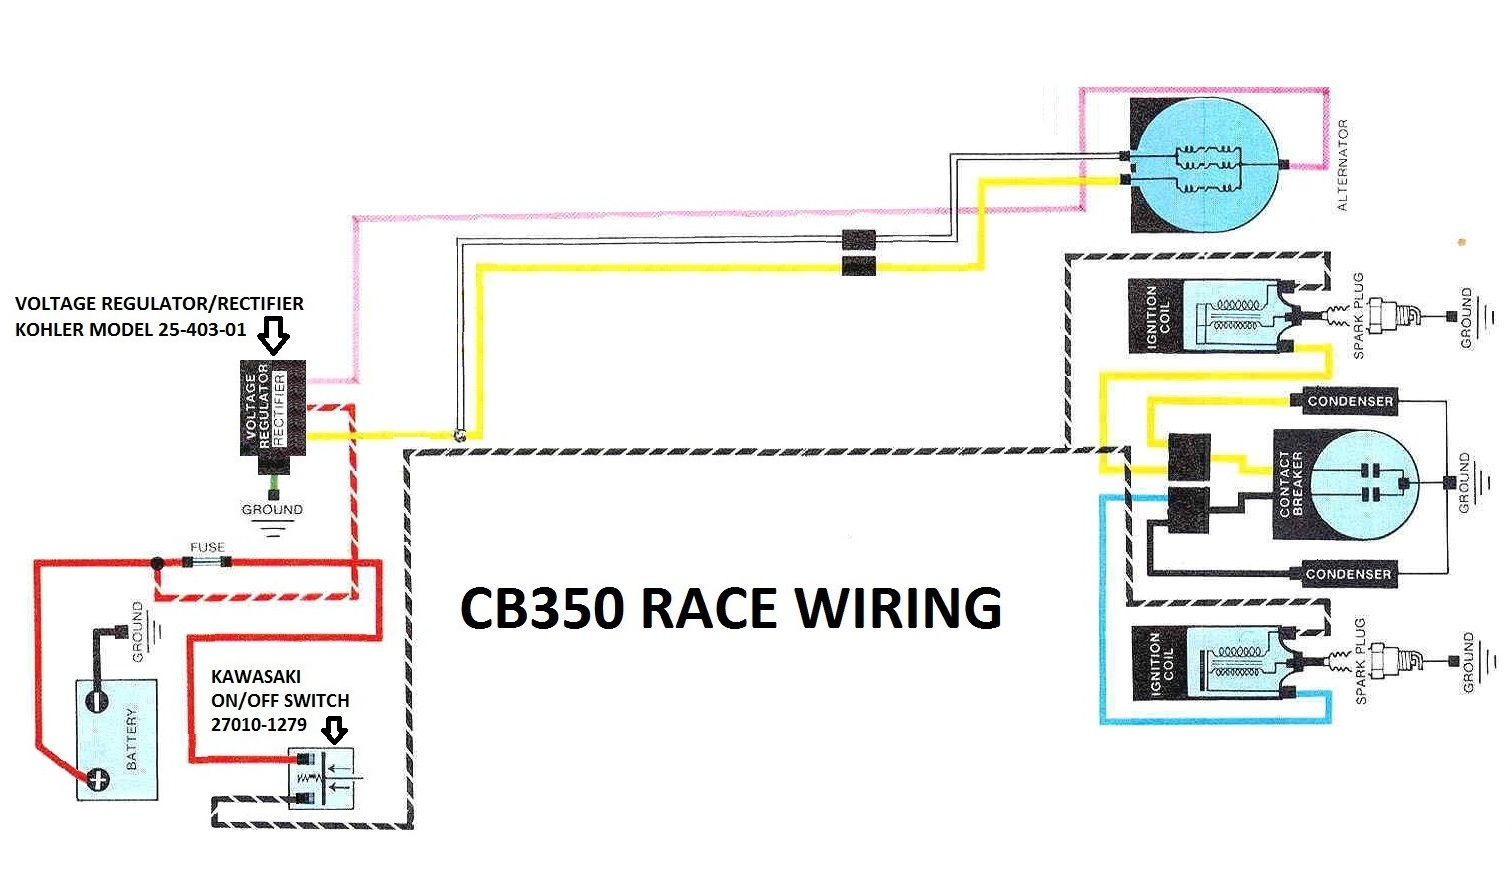 trx350 wiring diagram wiring library cb350f wiring diagram opinions about wiring diagram u2022 rh voterid co 1987 honda trx 350 wiring